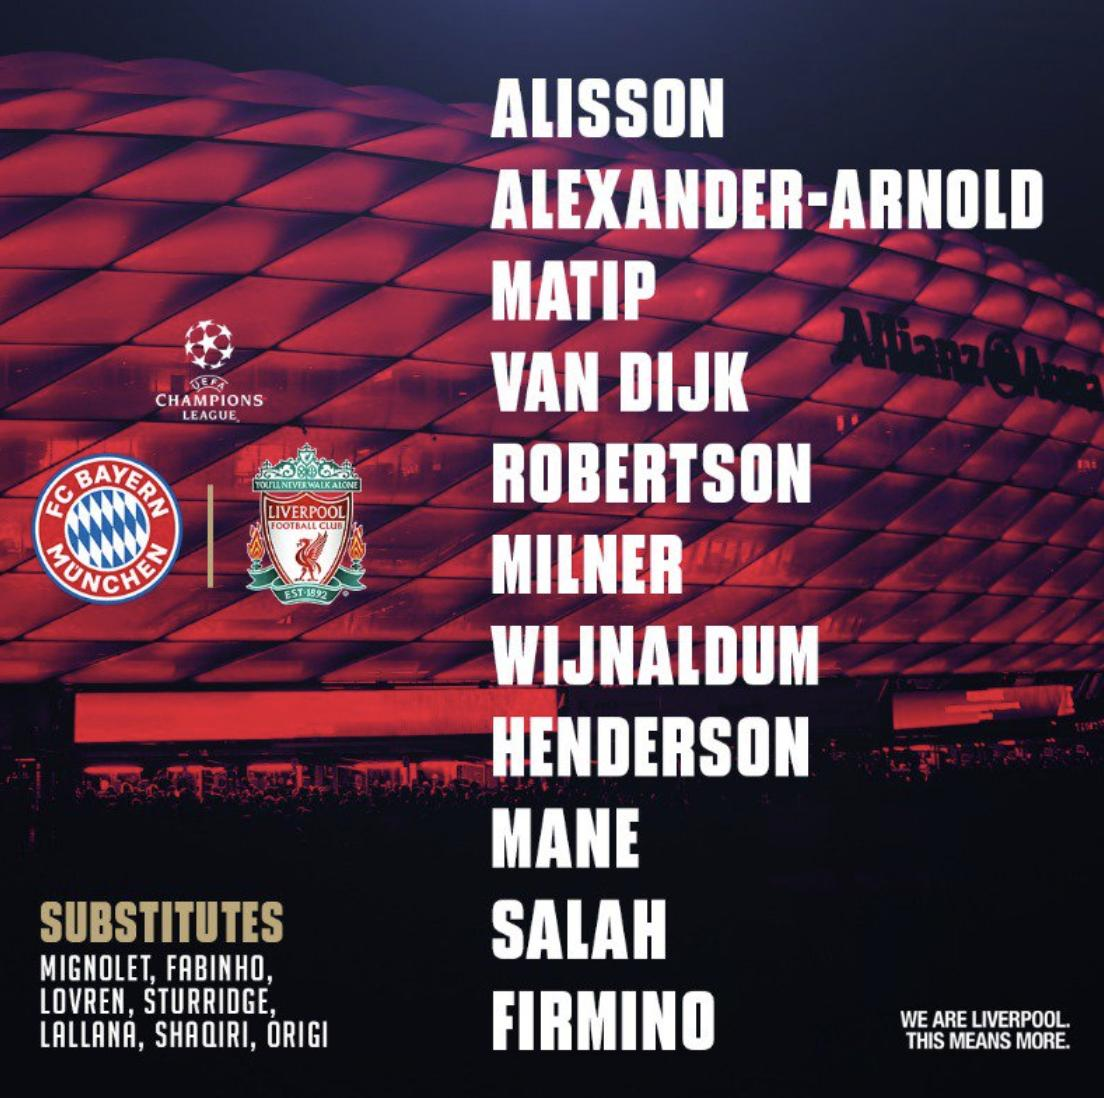 Barcelona 3 0 Liverpool In Game And Post Match Discussion: Bayern Munich 1-3 Liverpool: In Game And Post Match Discussion